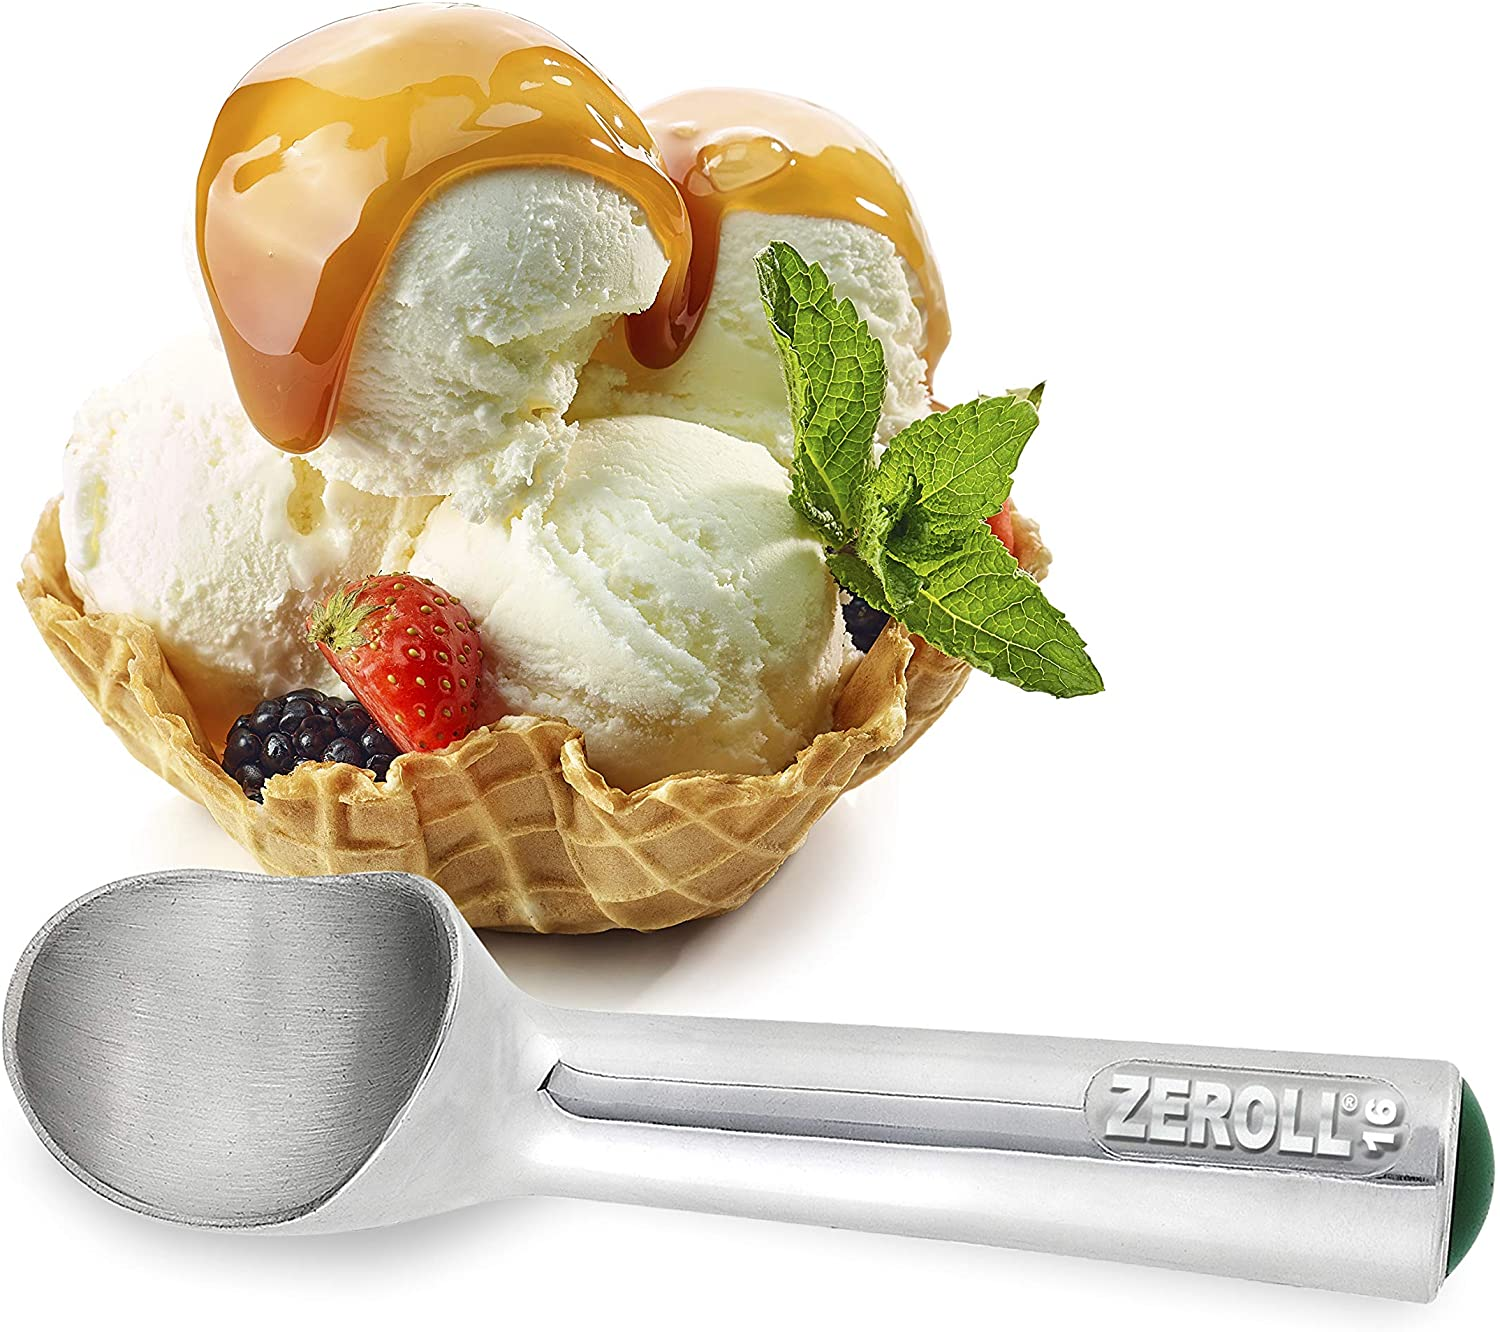 Roll over image to zoom in  Zeroll Original Ice Cream Unique Liquid Filled Heat Conductive Handle Simple One Piece